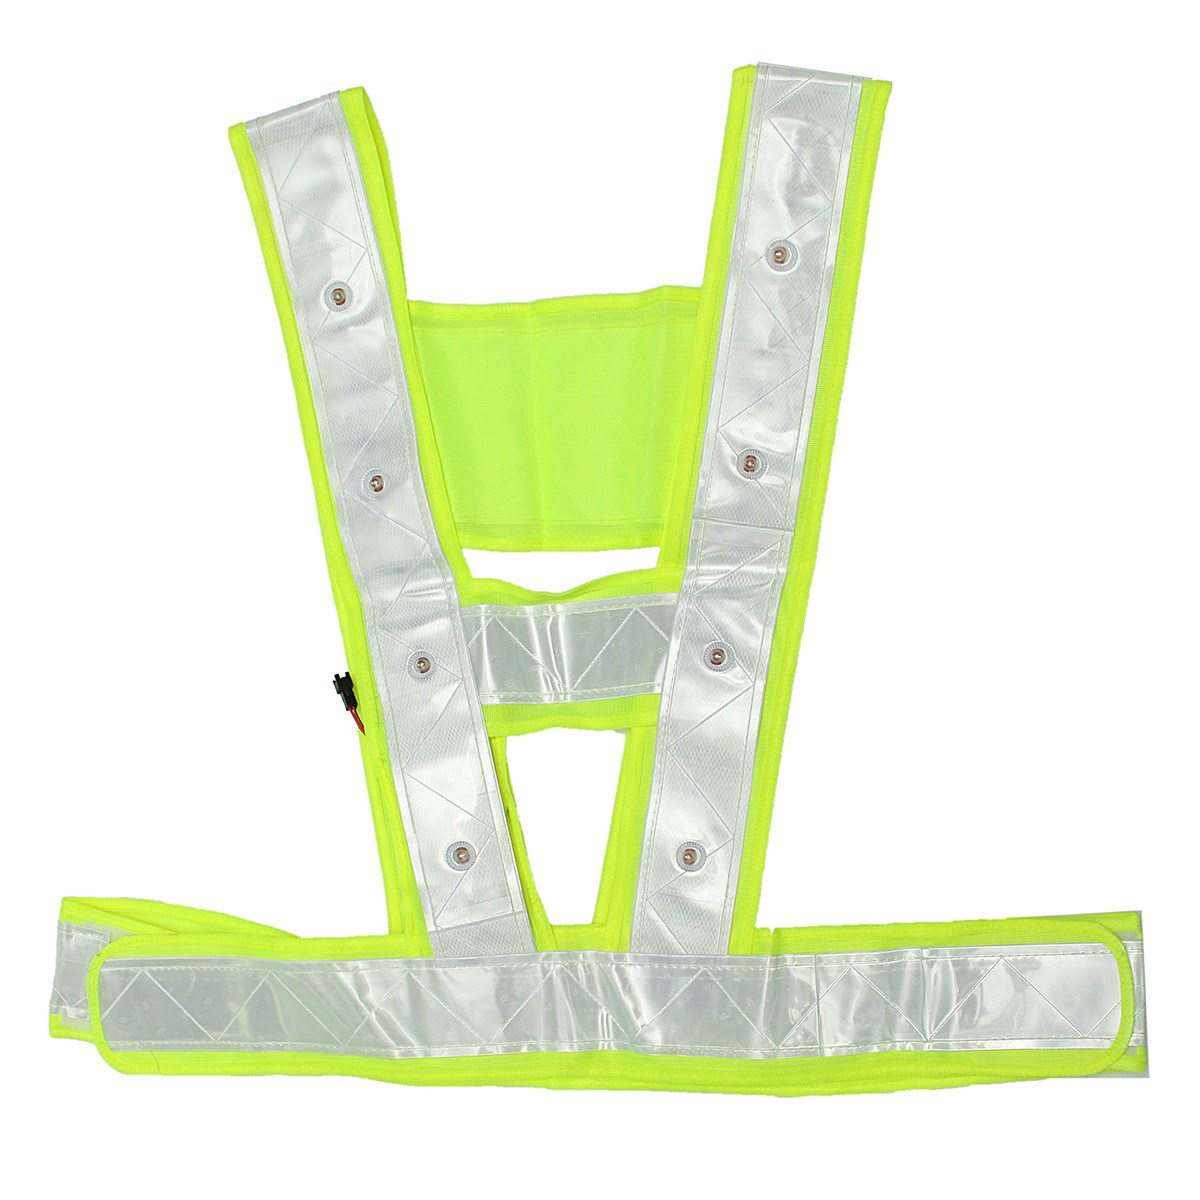 Safurance Cycling Running 16 LED Light Up Reflective Stripes Safety Vest High Visibility Workplace Safety Clothing